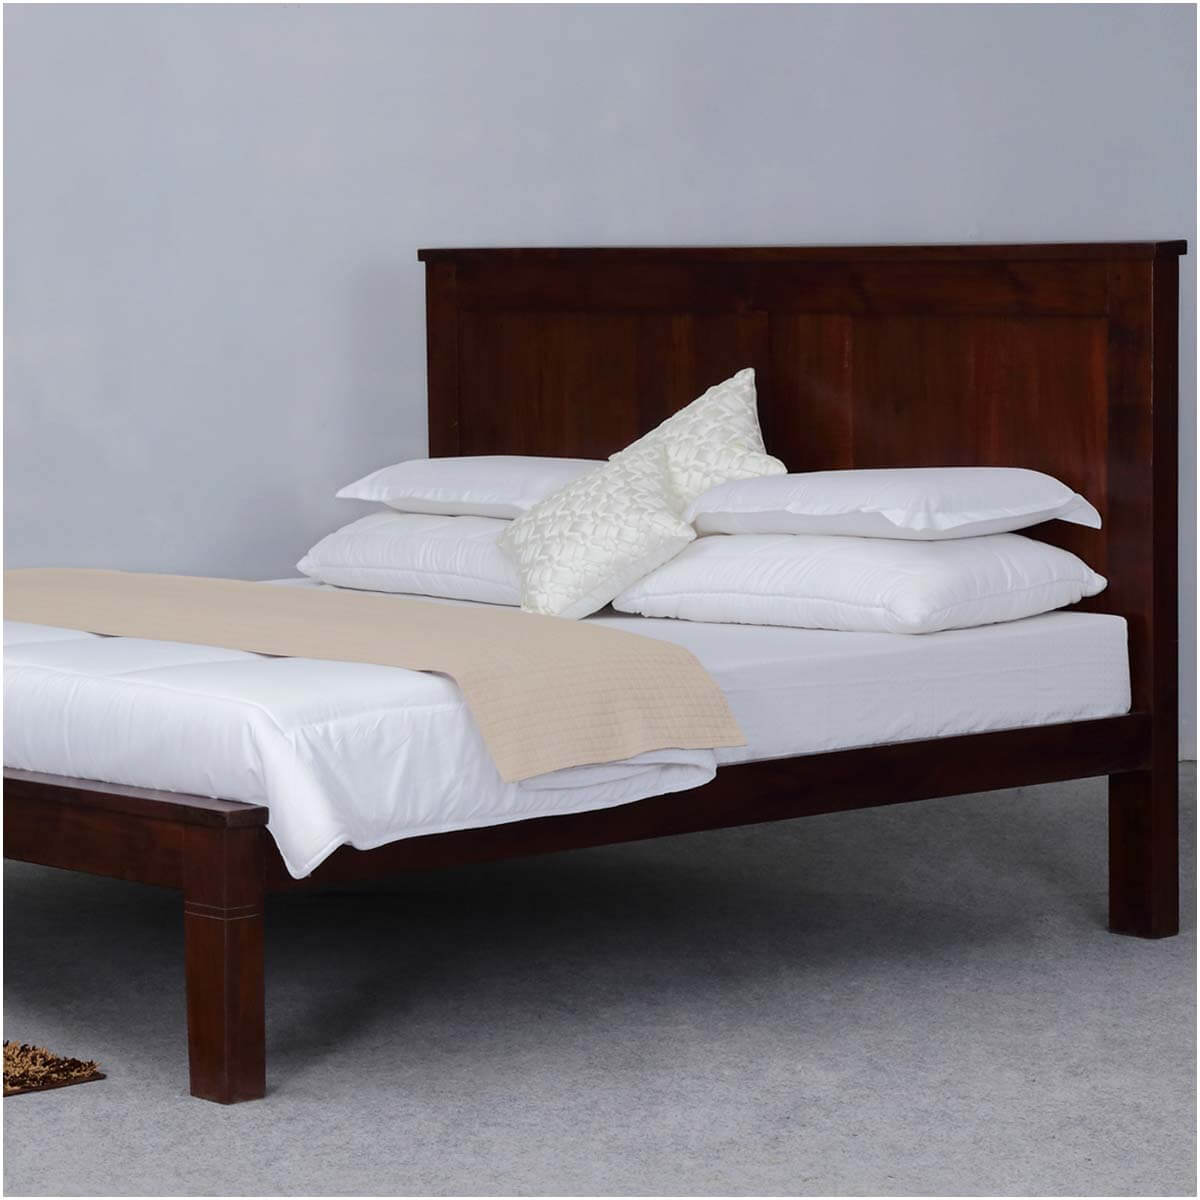 simply mission acacia wood handcrafted platform bed frame w headboard. Black Bedroom Furniture Sets. Home Design Ideas